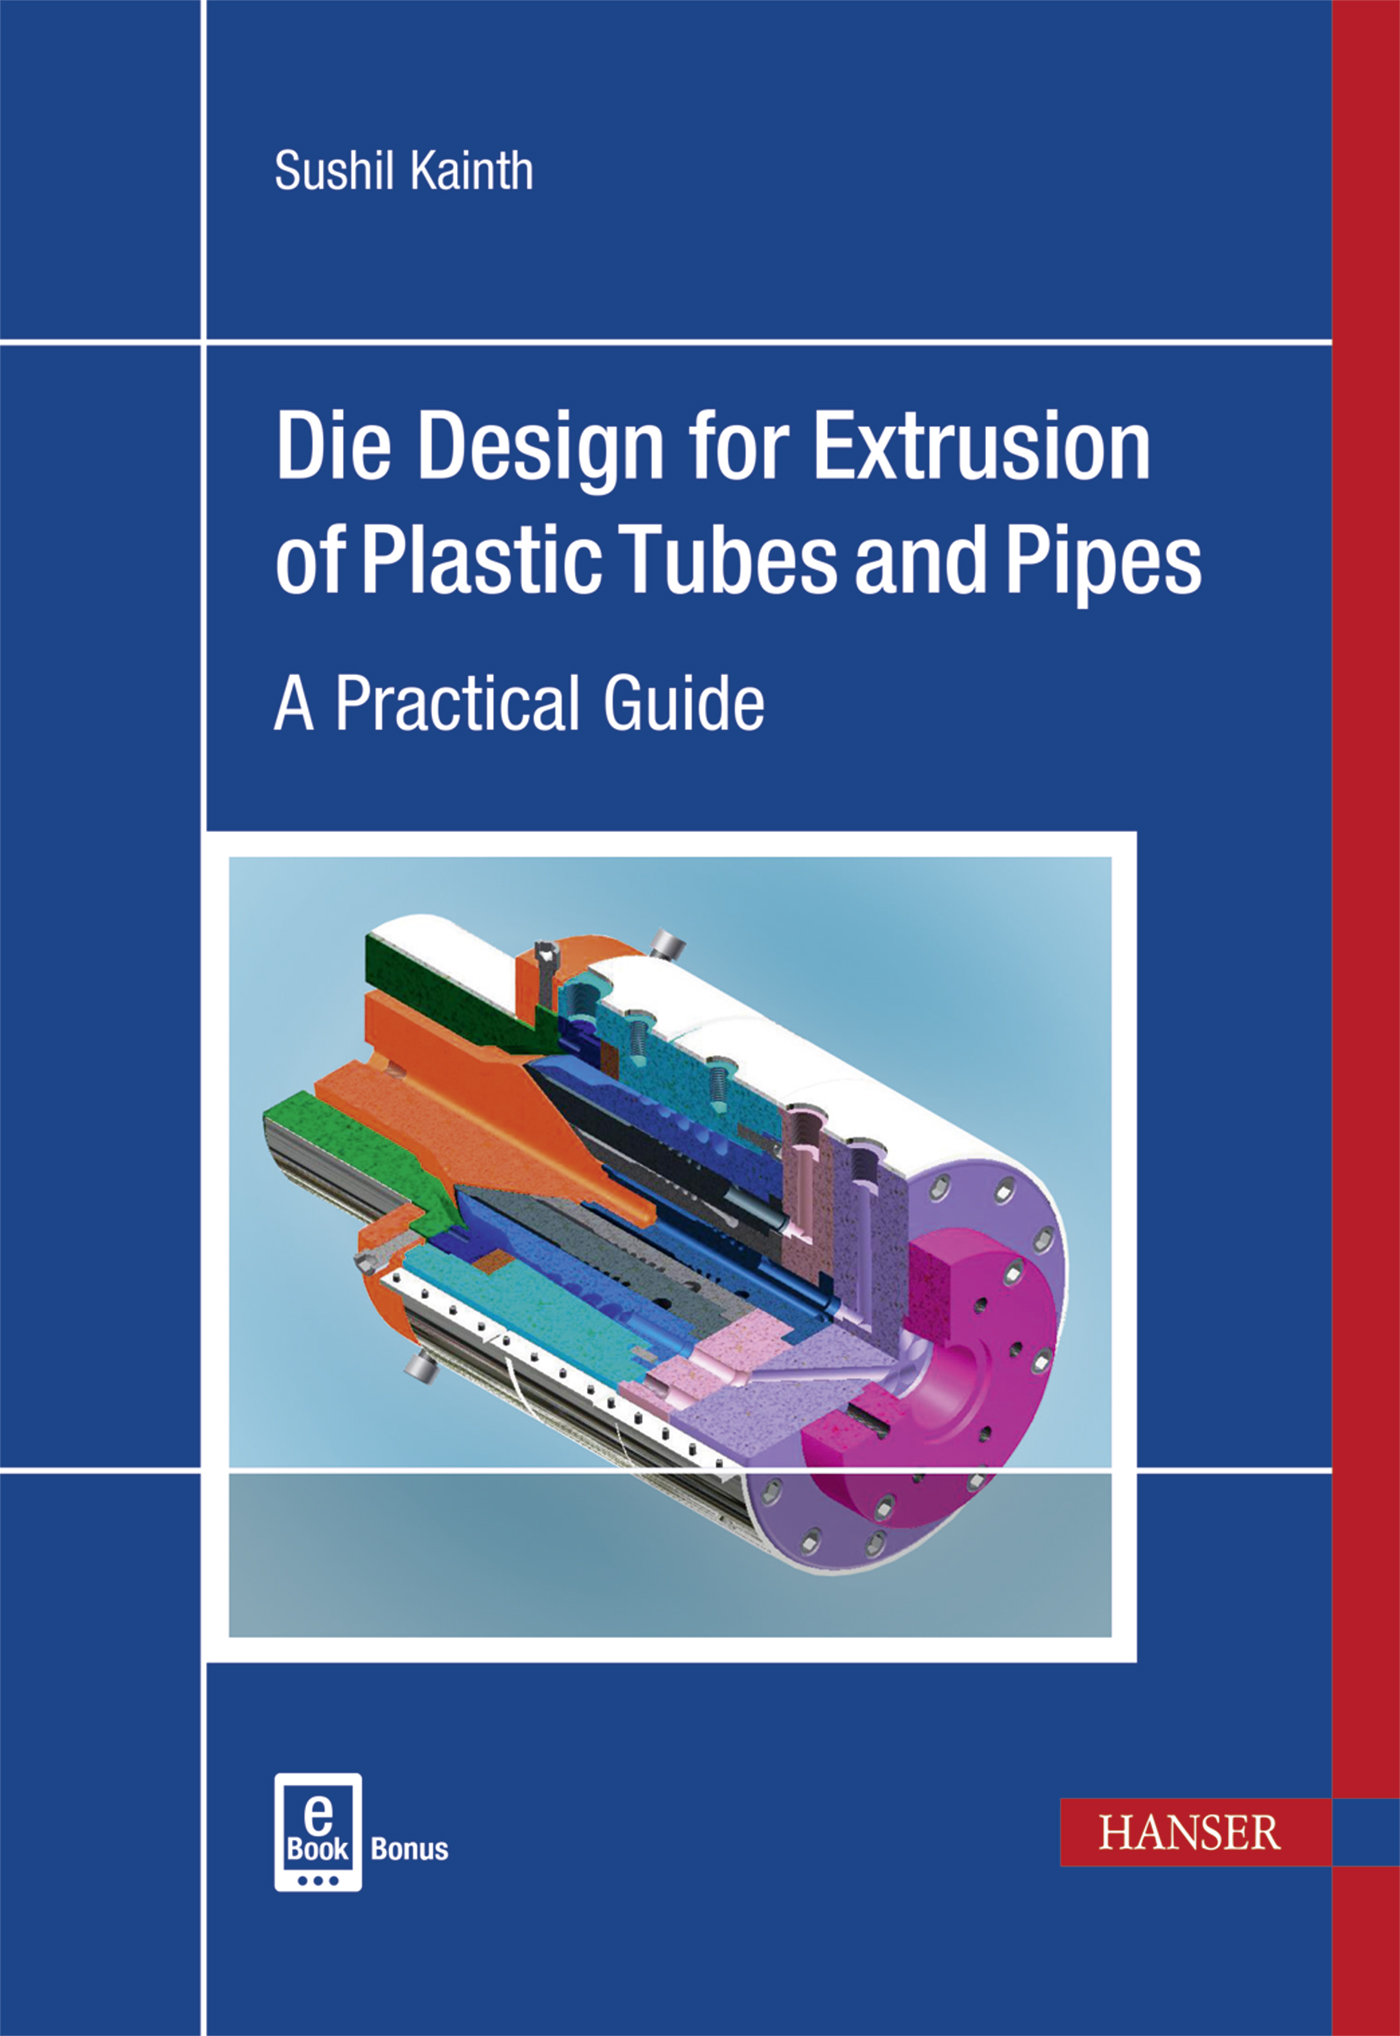 Kainth, Die Design for Extrusion of Plastic Tubes and Pipes, 978-1-56990-672-9